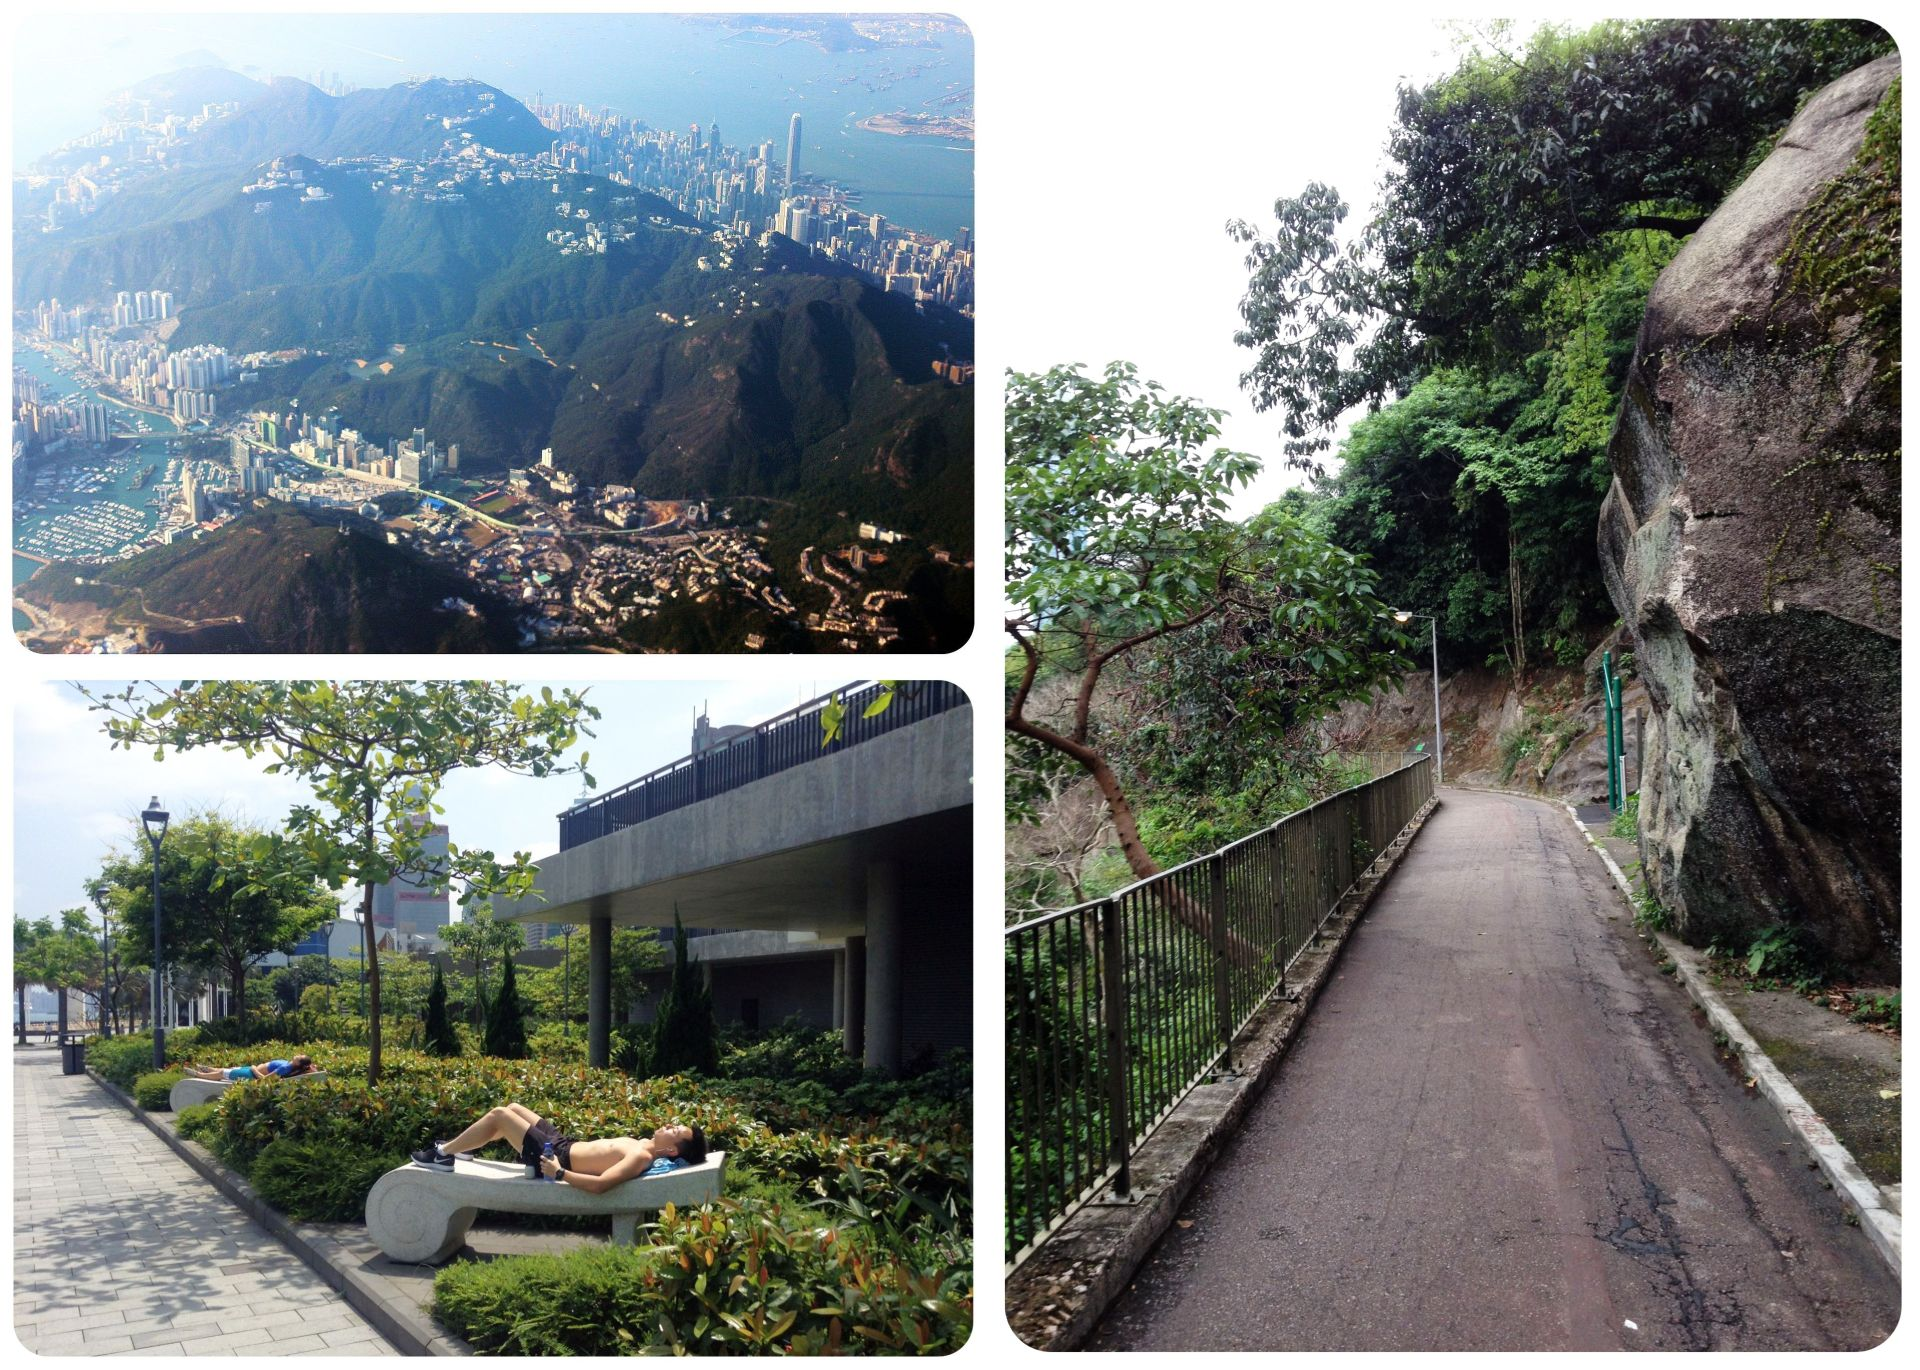 Hong Kong green spaces